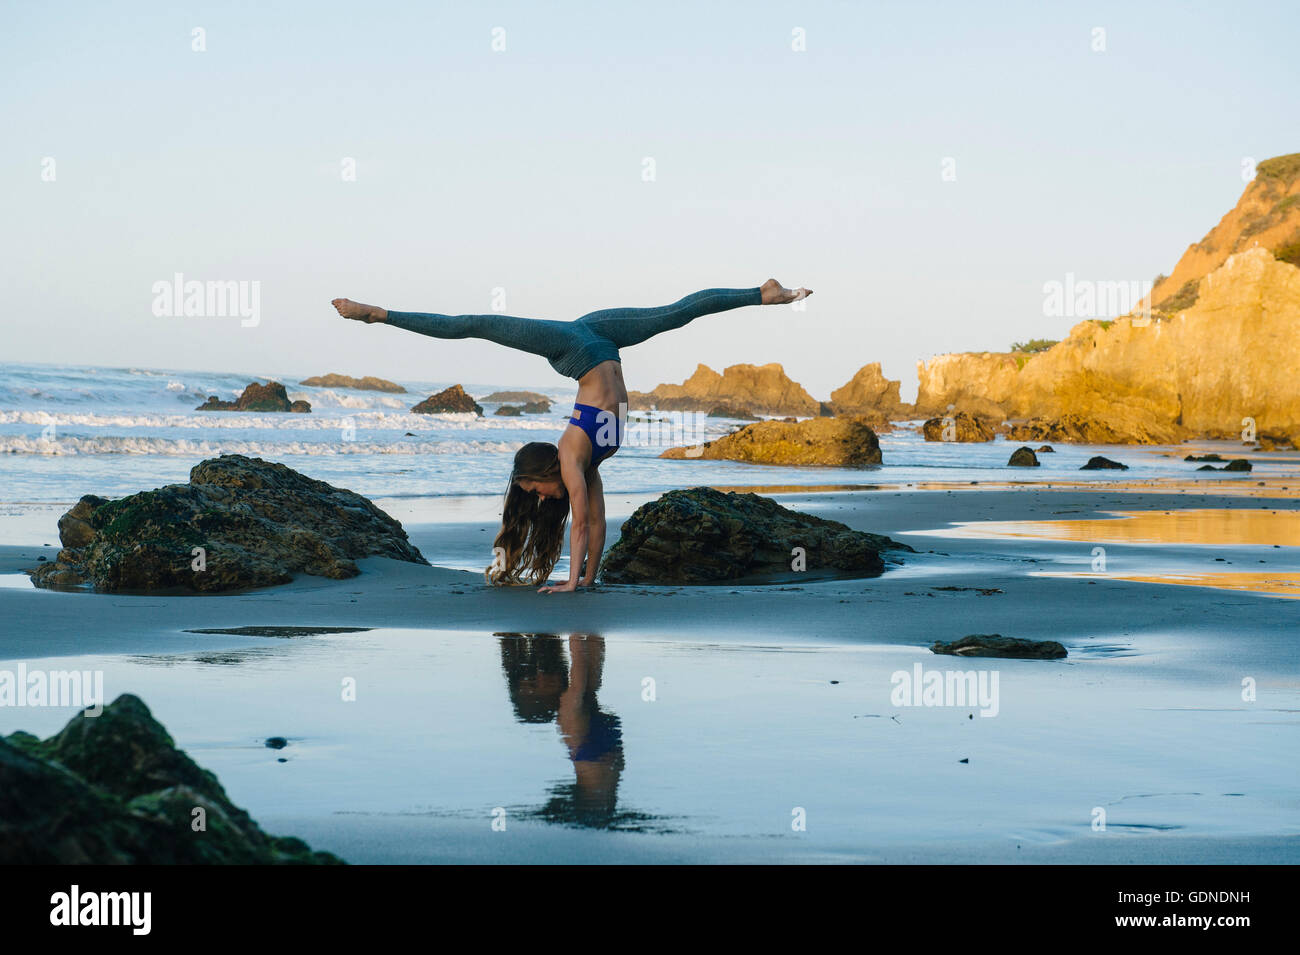 Jeune danseuse prête à handstand on beach, Los Angeles, Californie, USA Photo Stock